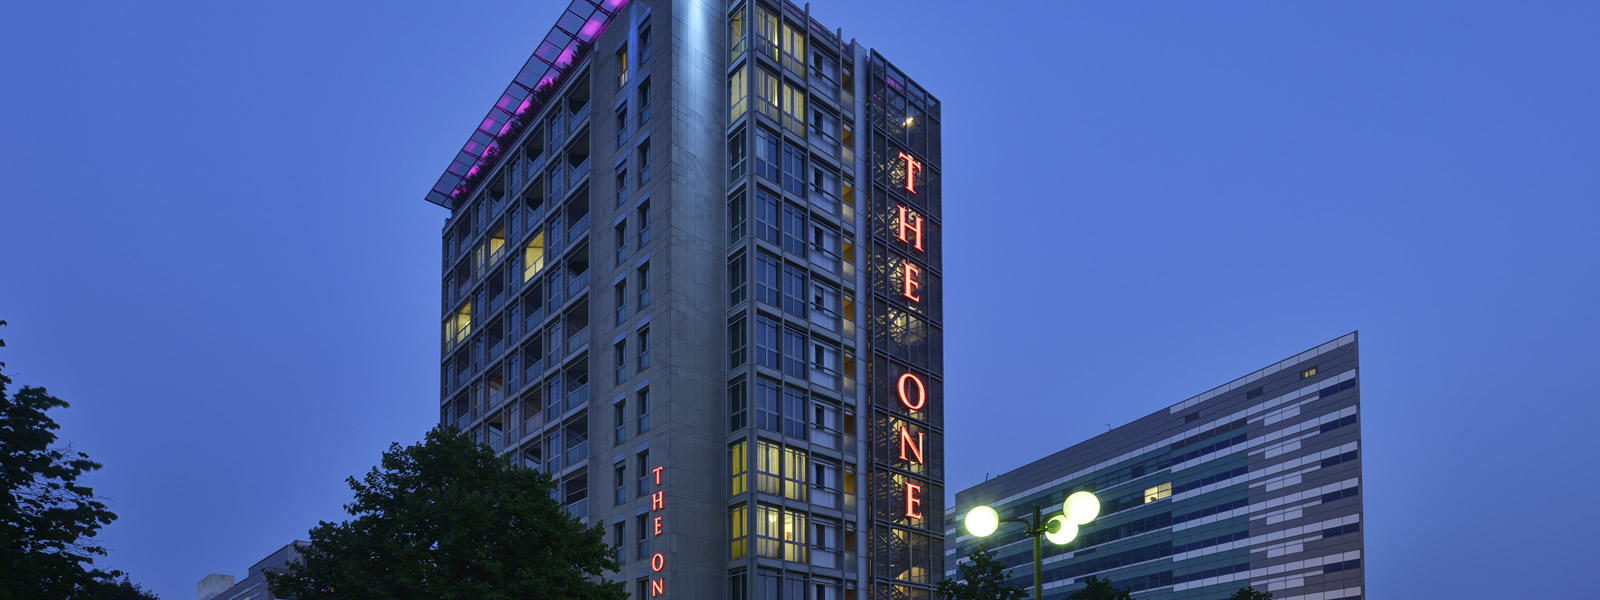 UNAHOTELS The One Milano